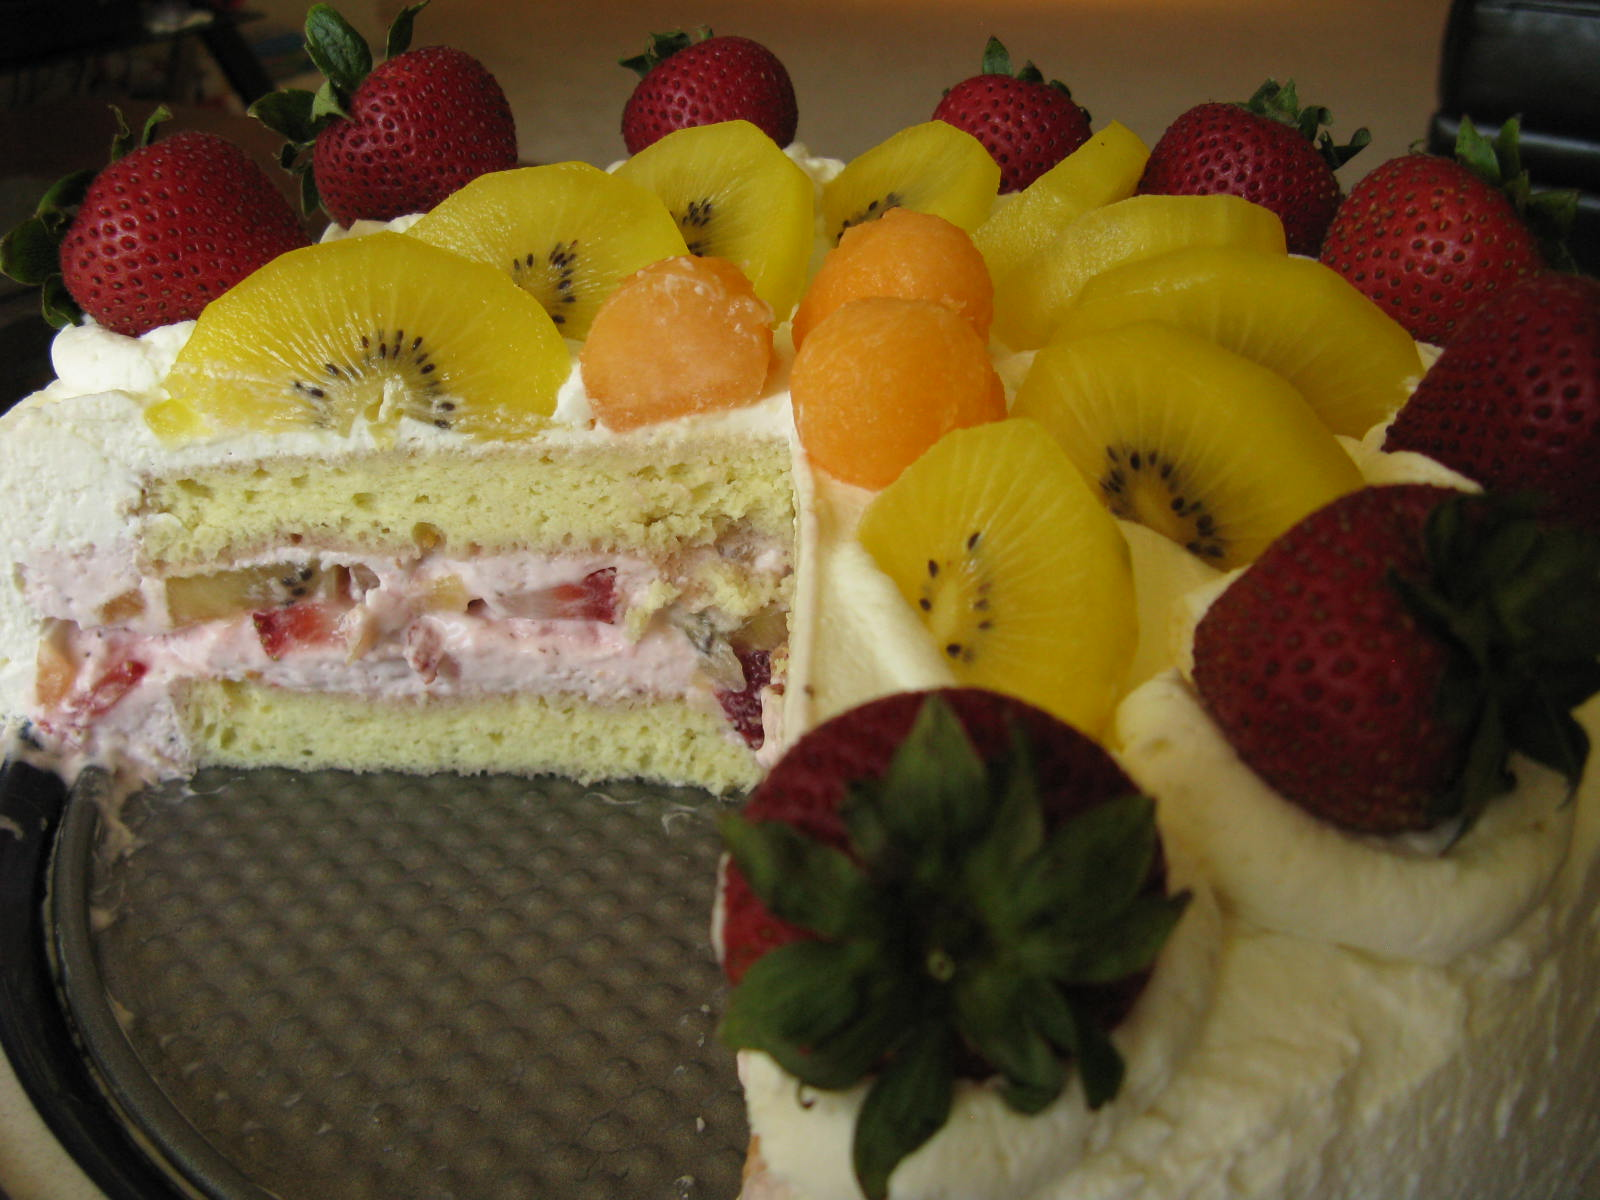 Chinese Birthday Cream Cake With Strawberry Mousse Filling And Fresh